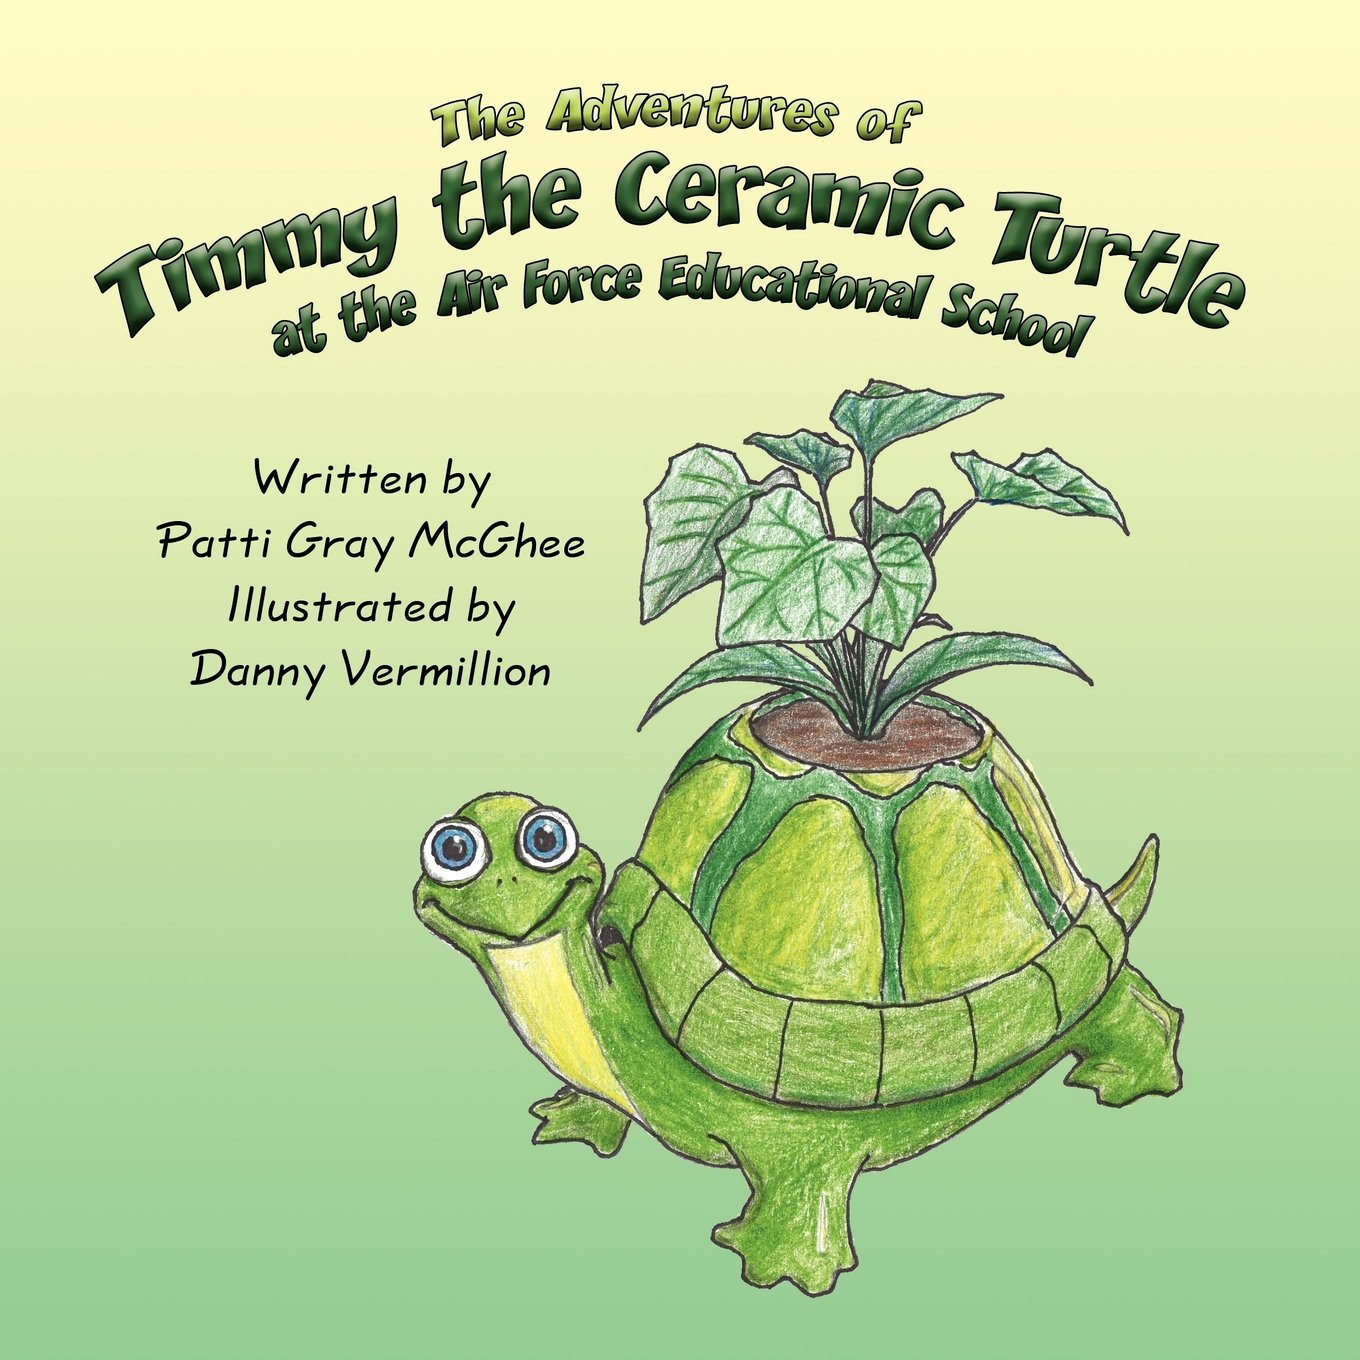 The Adventures of Timmy the Ceramic Turtle: at the Air Force Educational School PDF